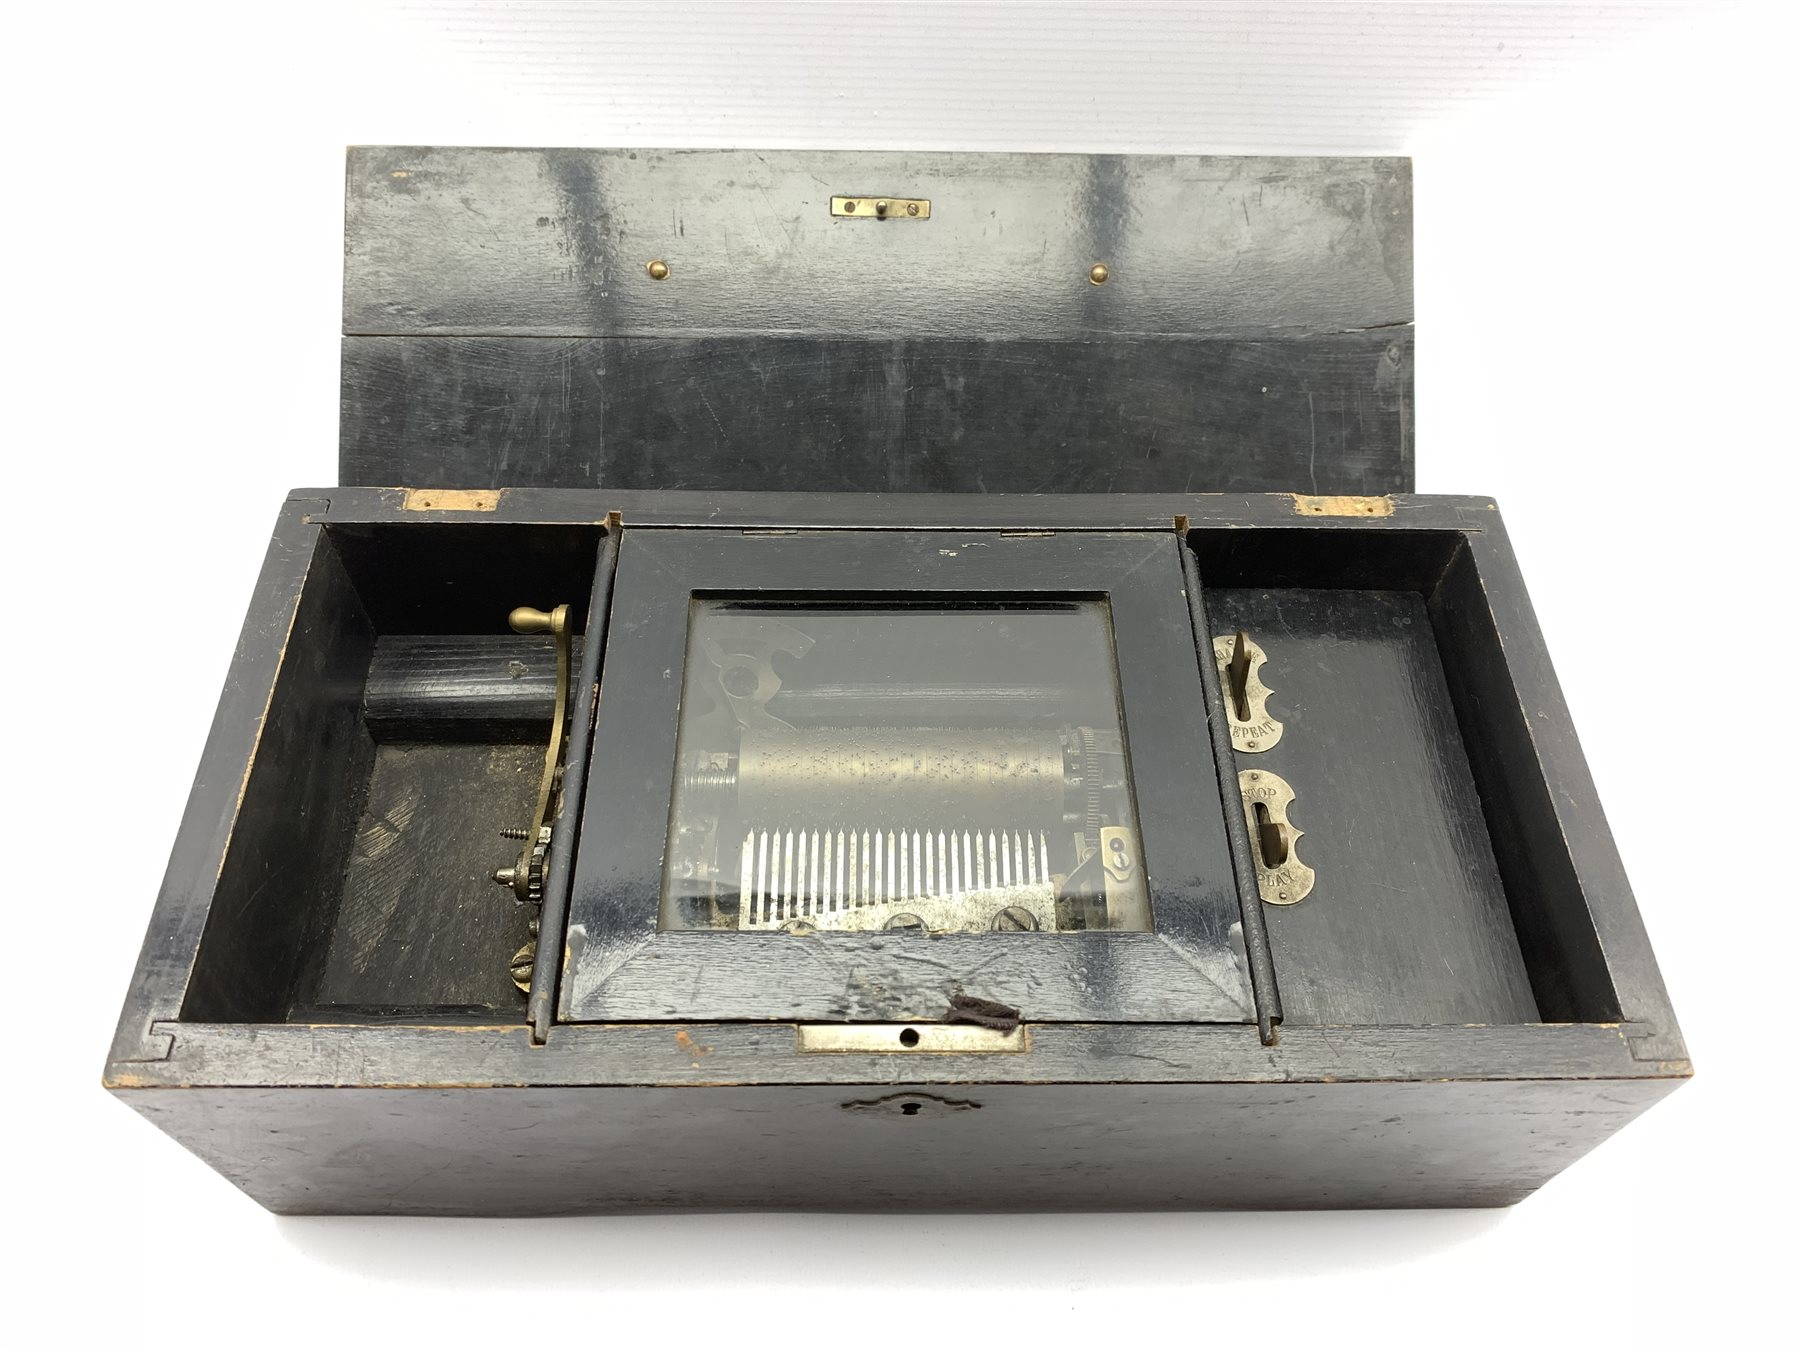 Late 19th Century Swiss eight air musical box with comb and cylinder movement, cylinder 10cm long in - Image 2 of 7